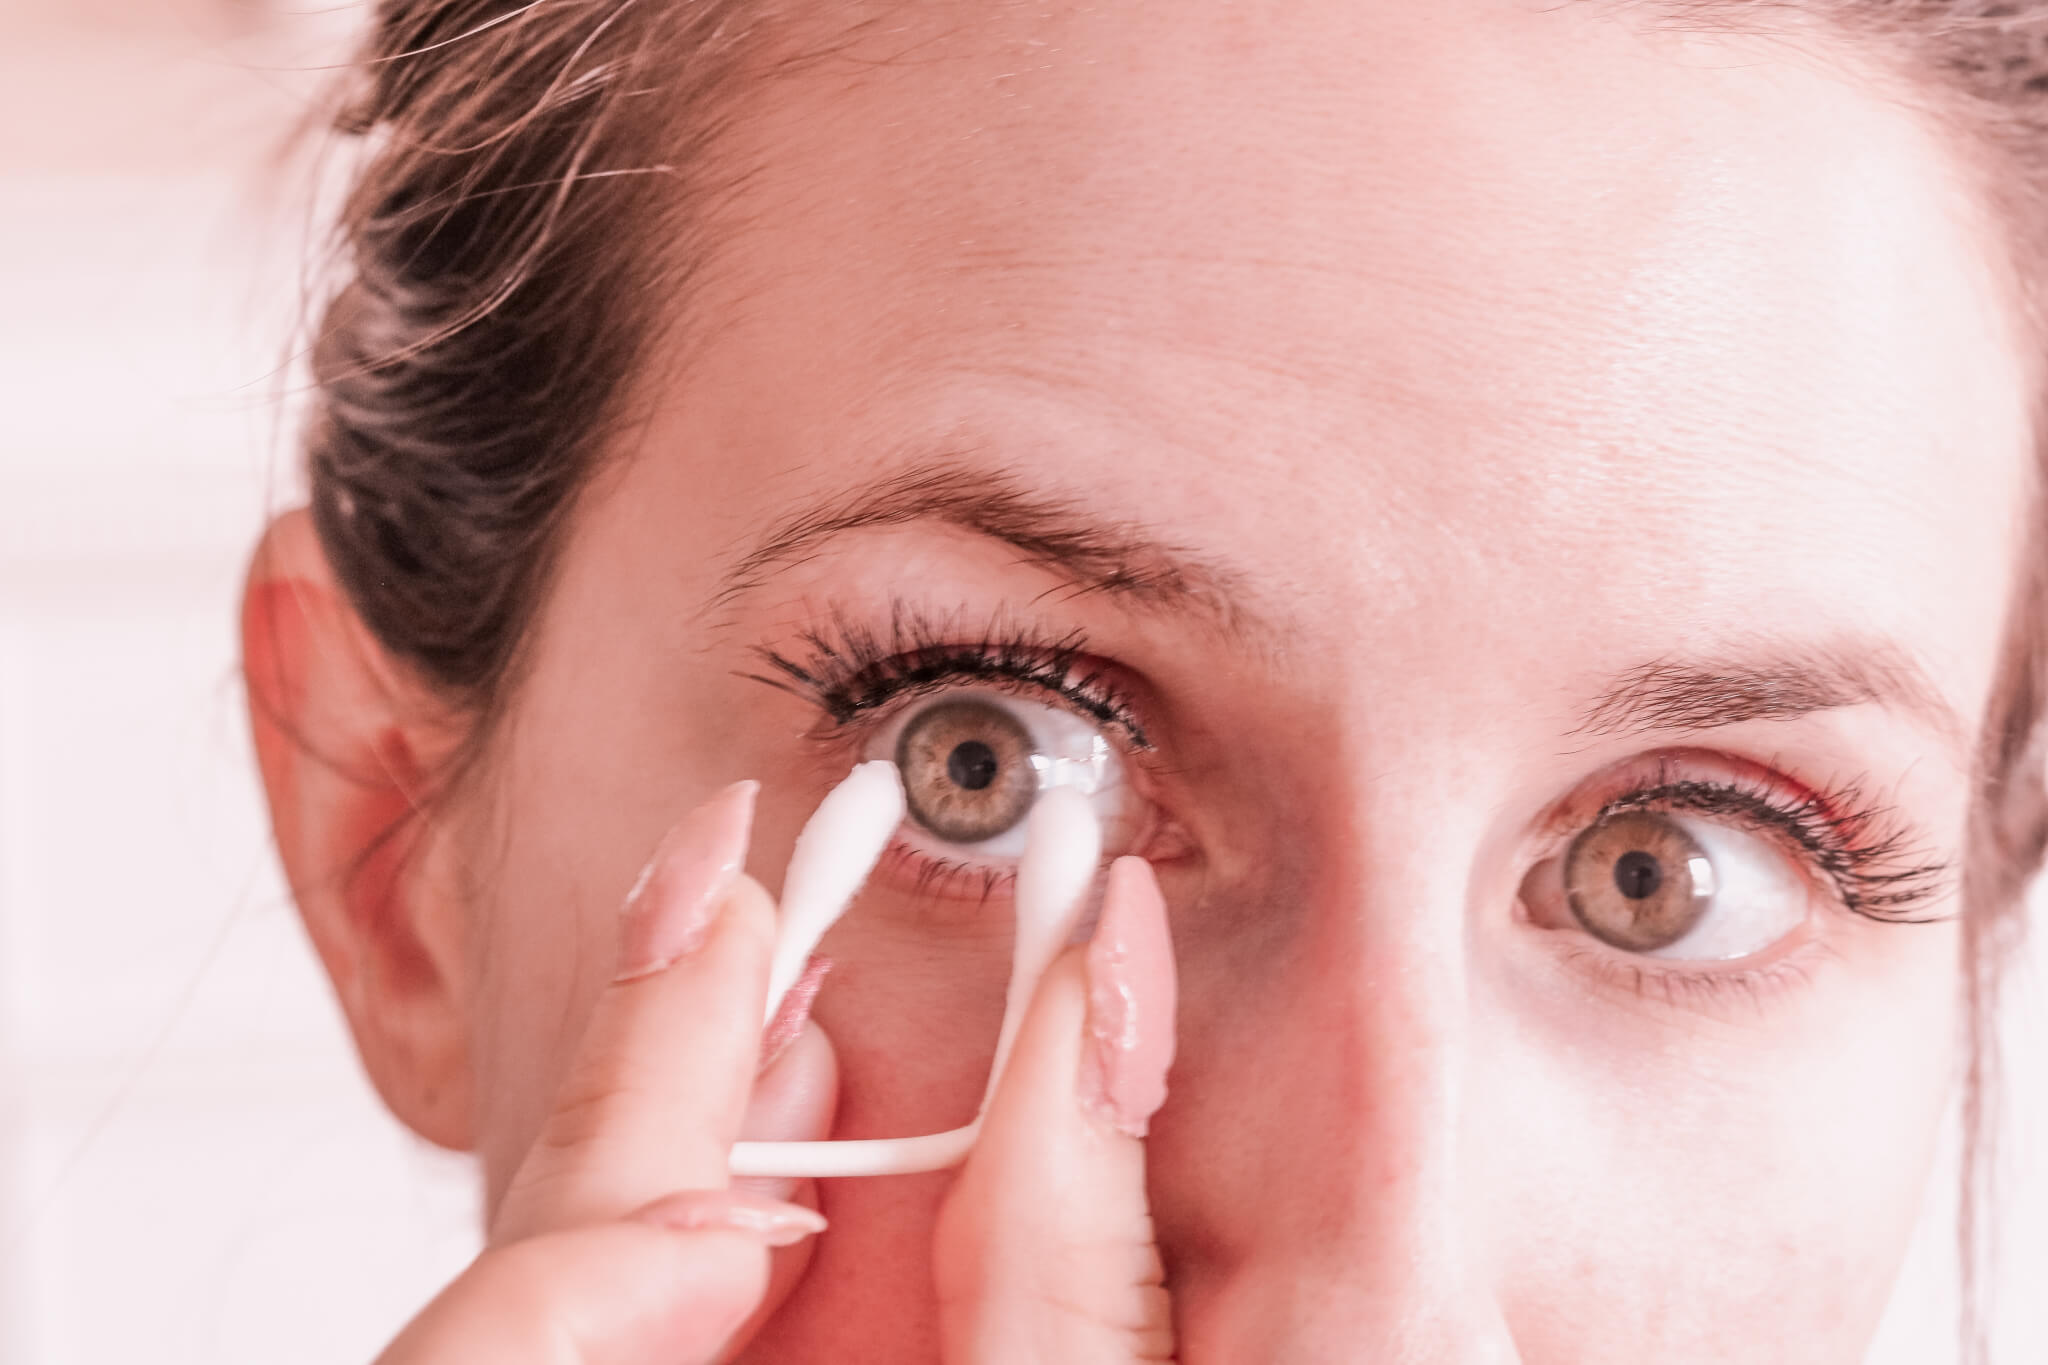 How To Remove Contacts Without Touching Eye